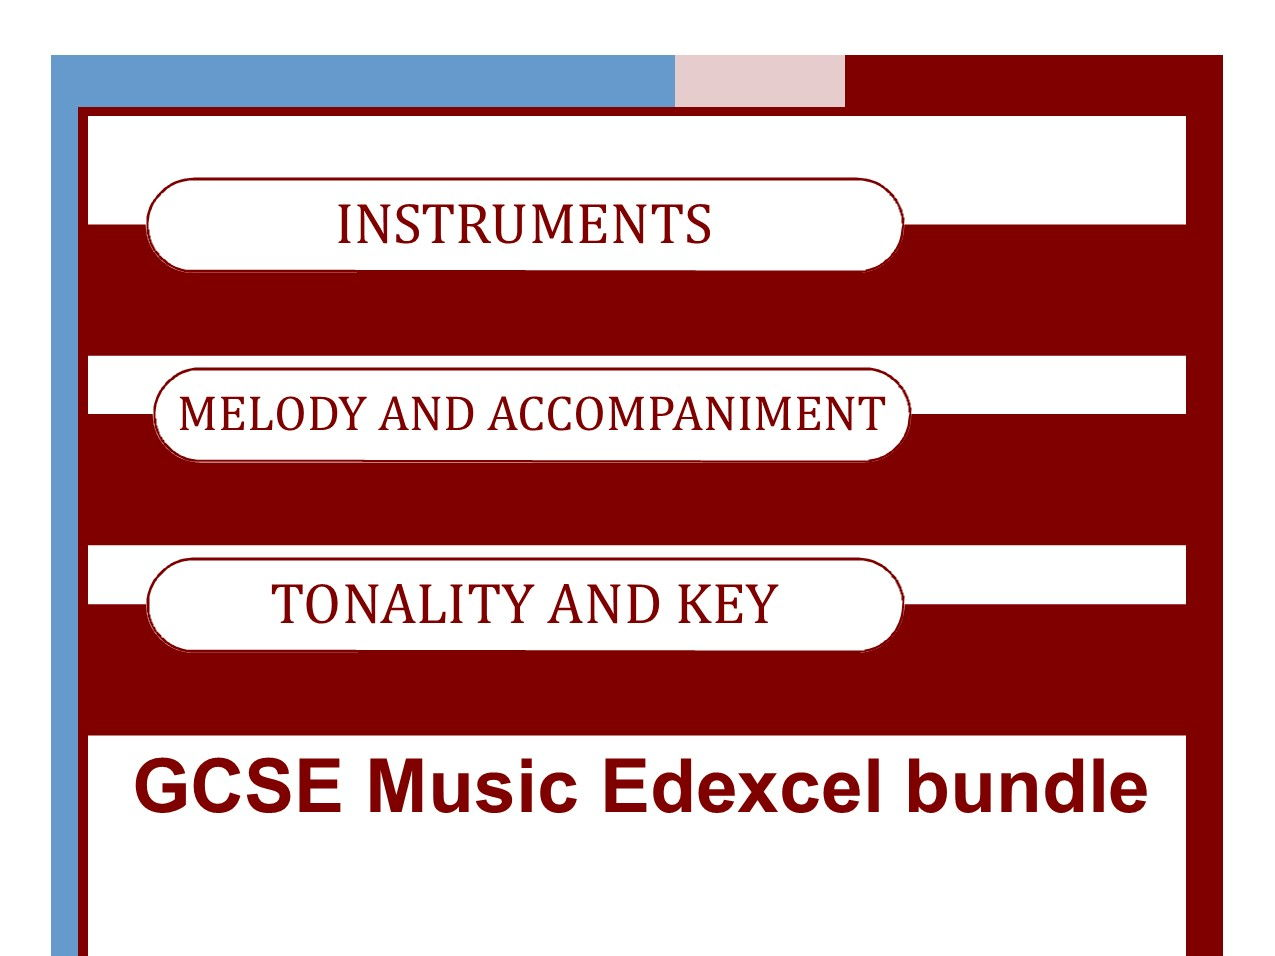 MUSIC EDEXCEL GCSE (9-1) Area of Study One BUNDLE Tonality and Key; Melody and Accompaniment; Instruments